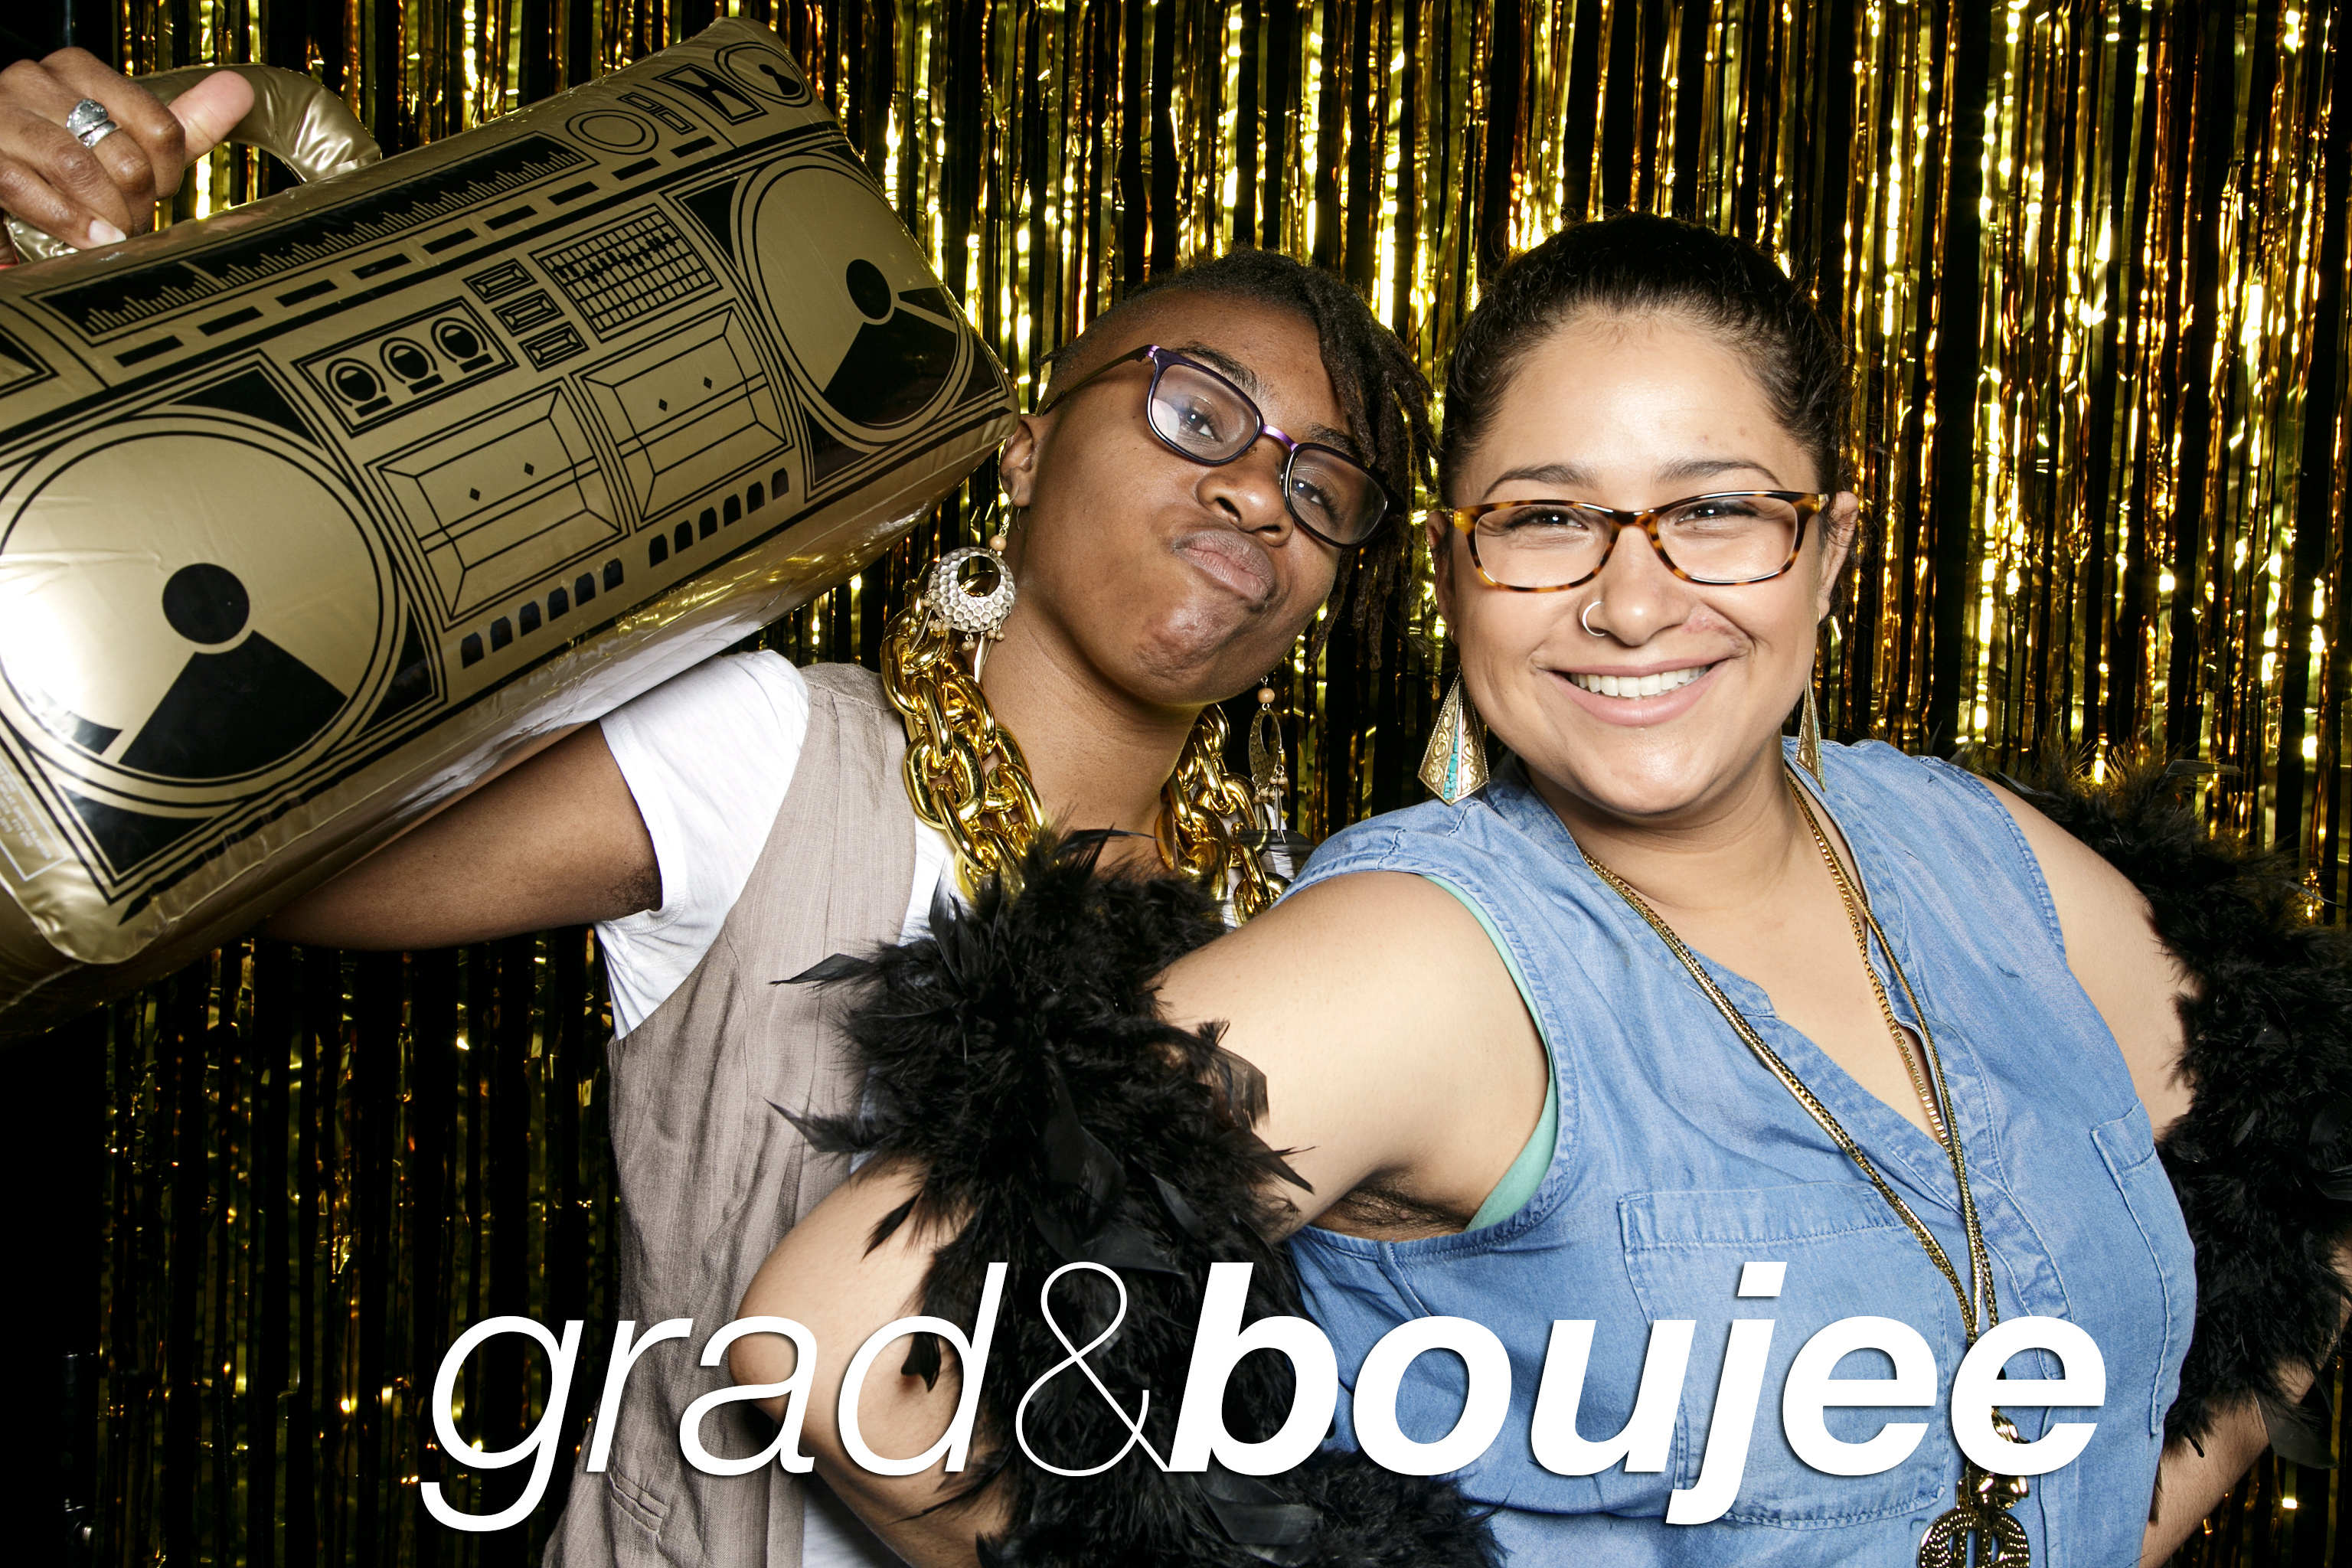 photo booth portraits from grad and boujee, may 2017